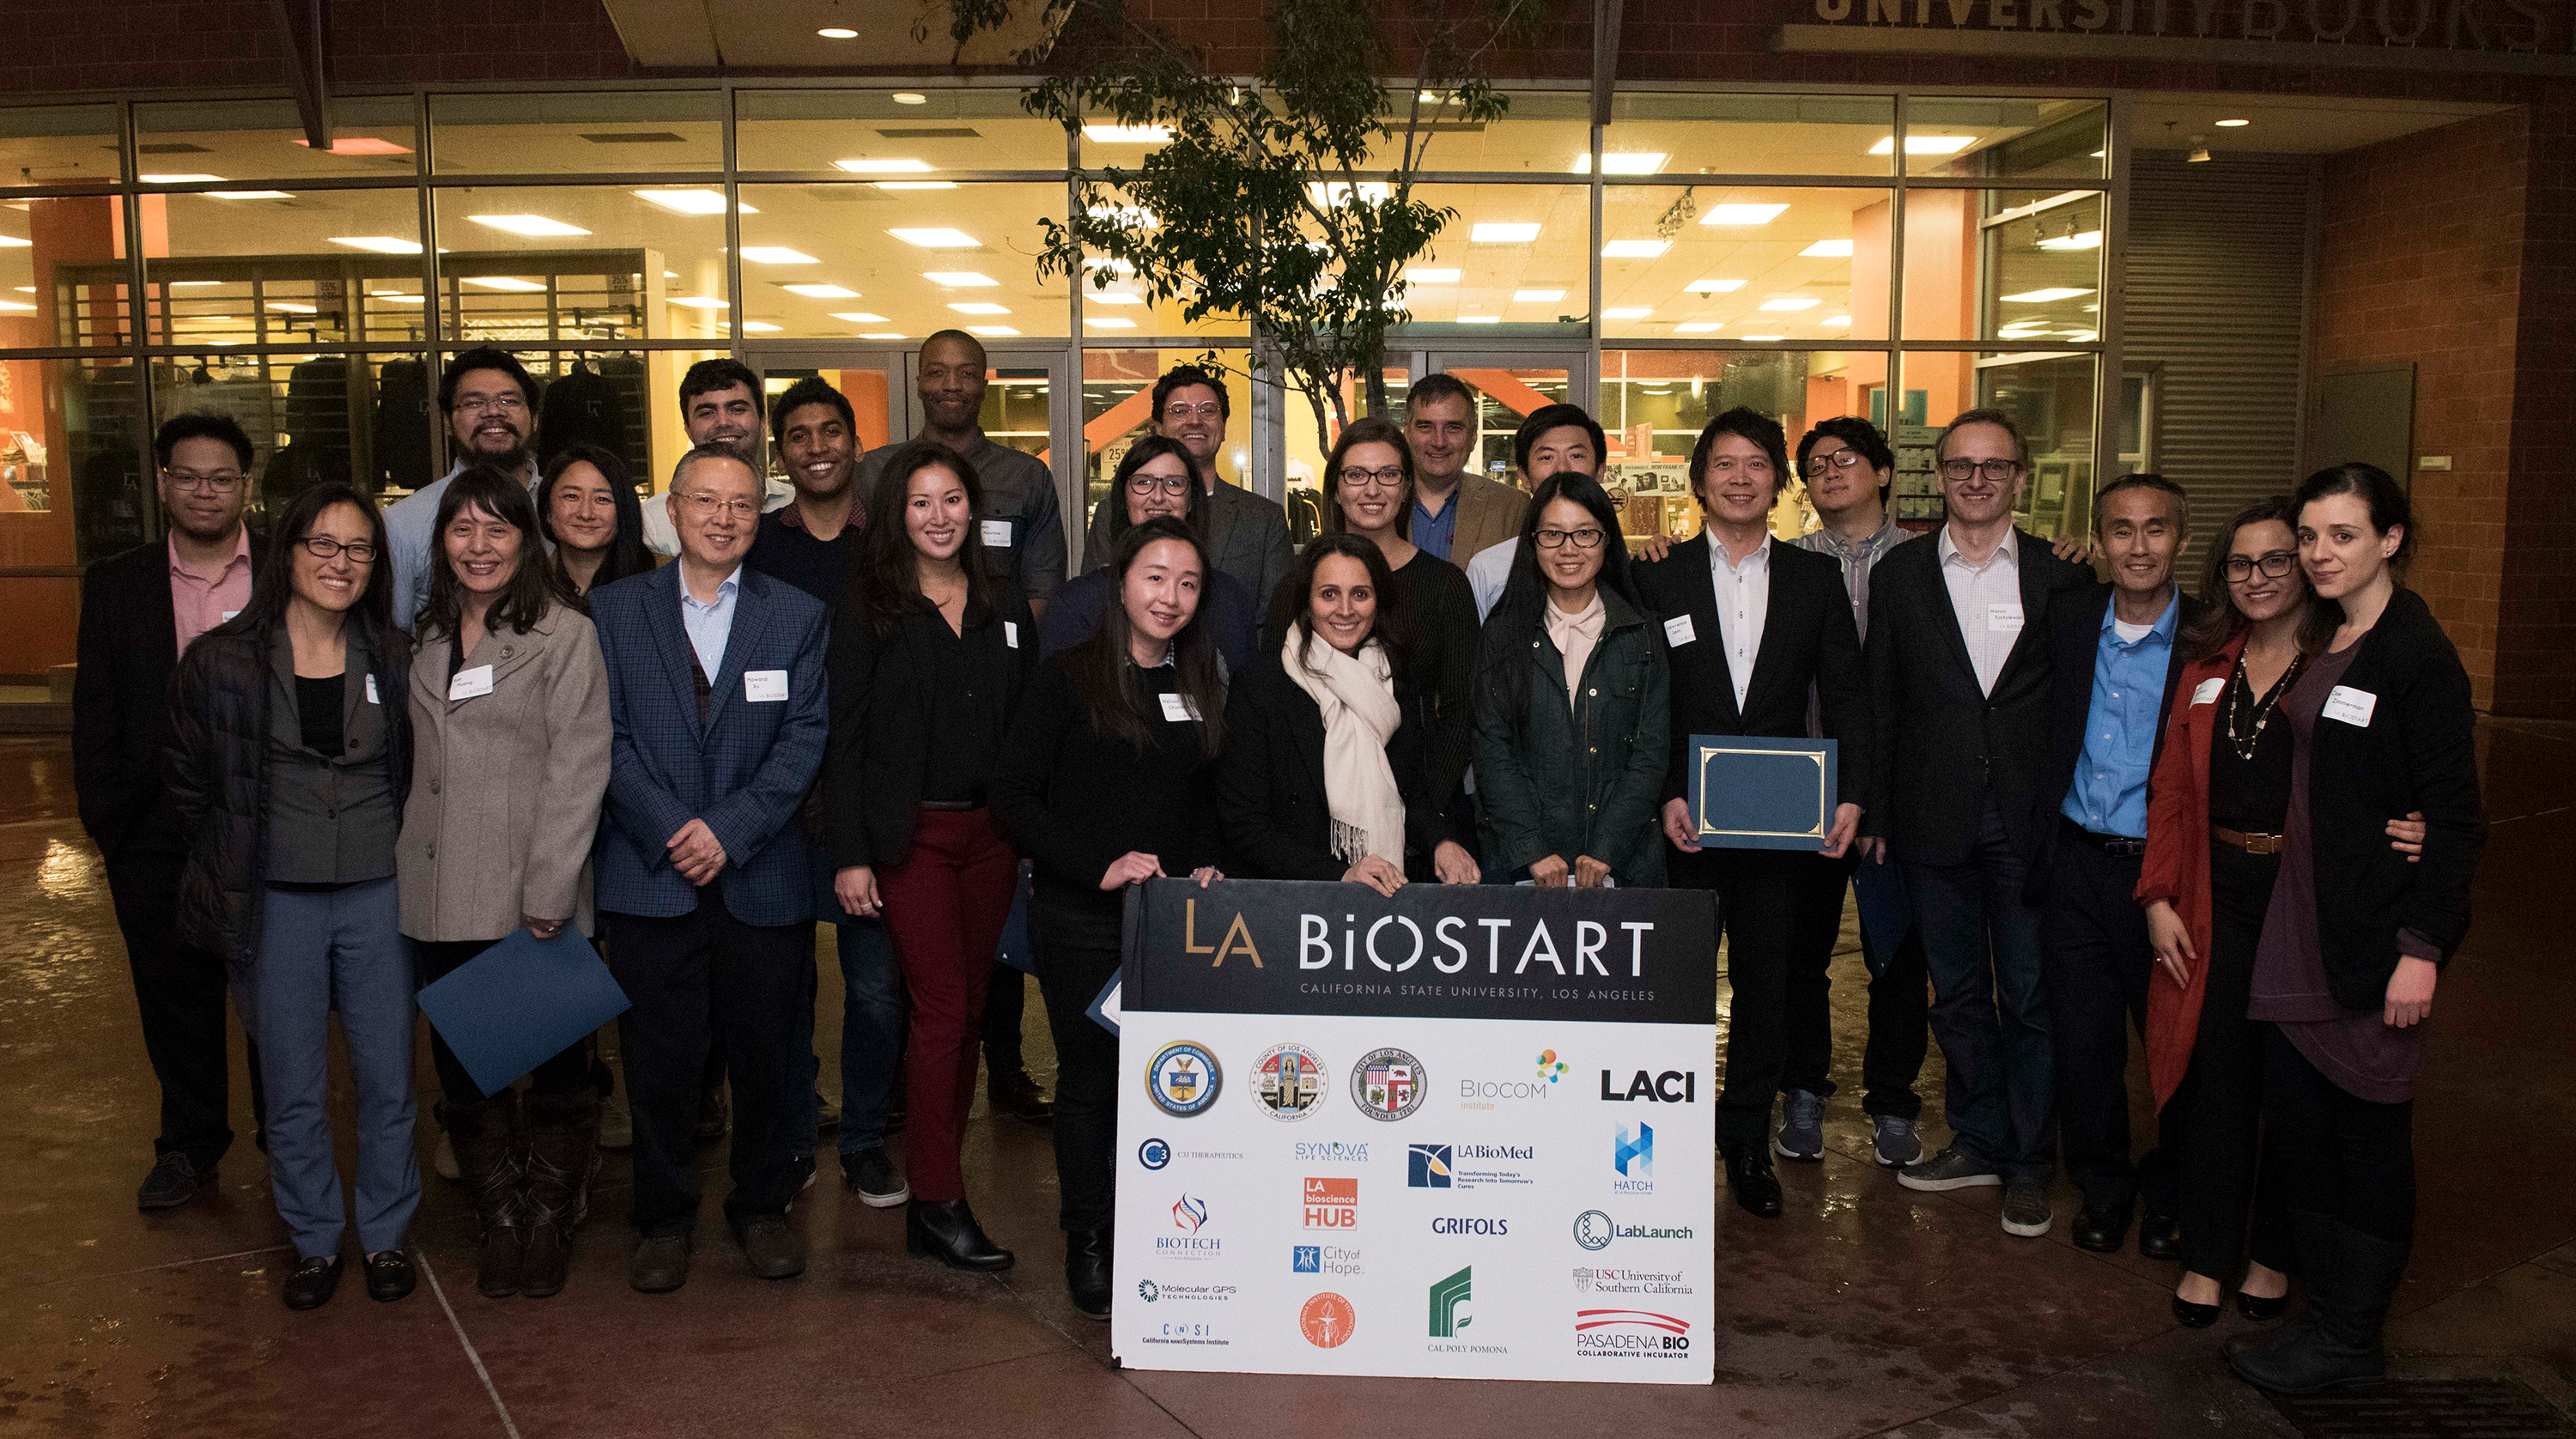 Members of the fourth class of Cal State LA BioStart fellows at the Feb. 13 event.